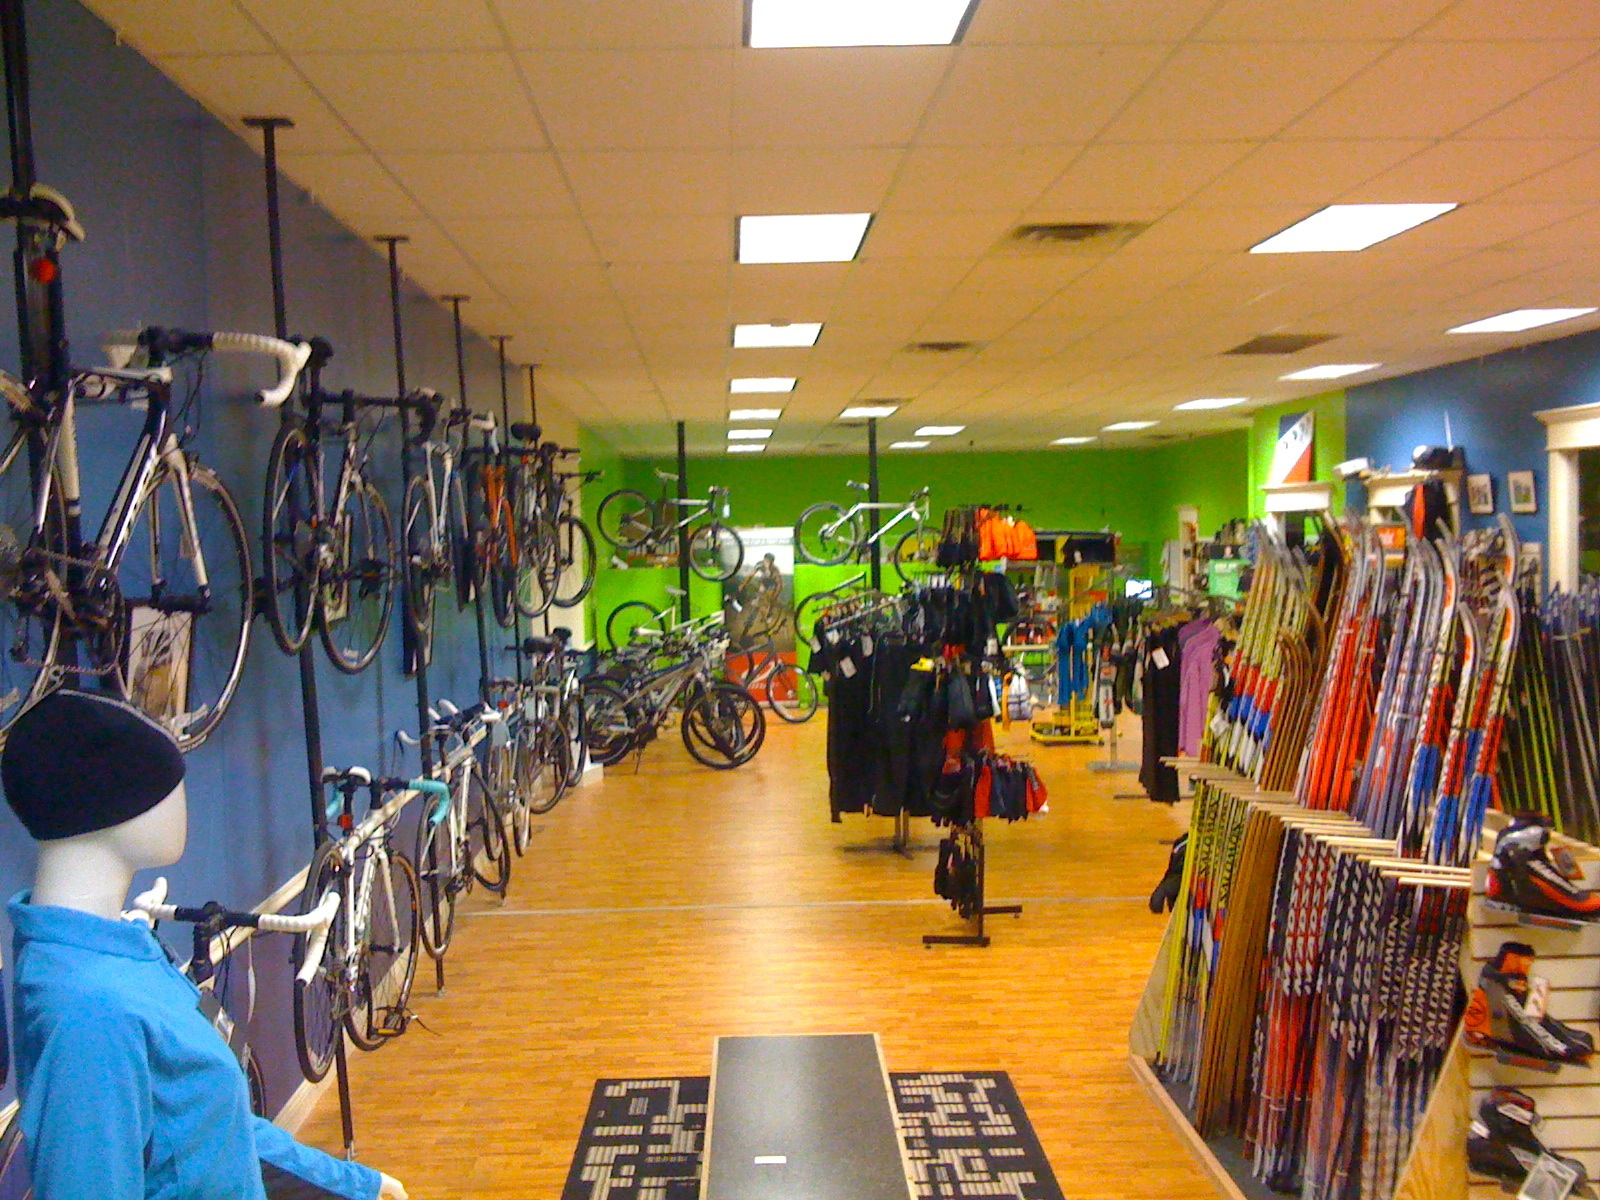 Equipement trail boutique running sports outdoor shop - Inside Cyclova Xc You Ll Find 3000 Square Feet Of The Best Assortment Of Xc Skis Bicycles And Trail Running Equipment In The Us